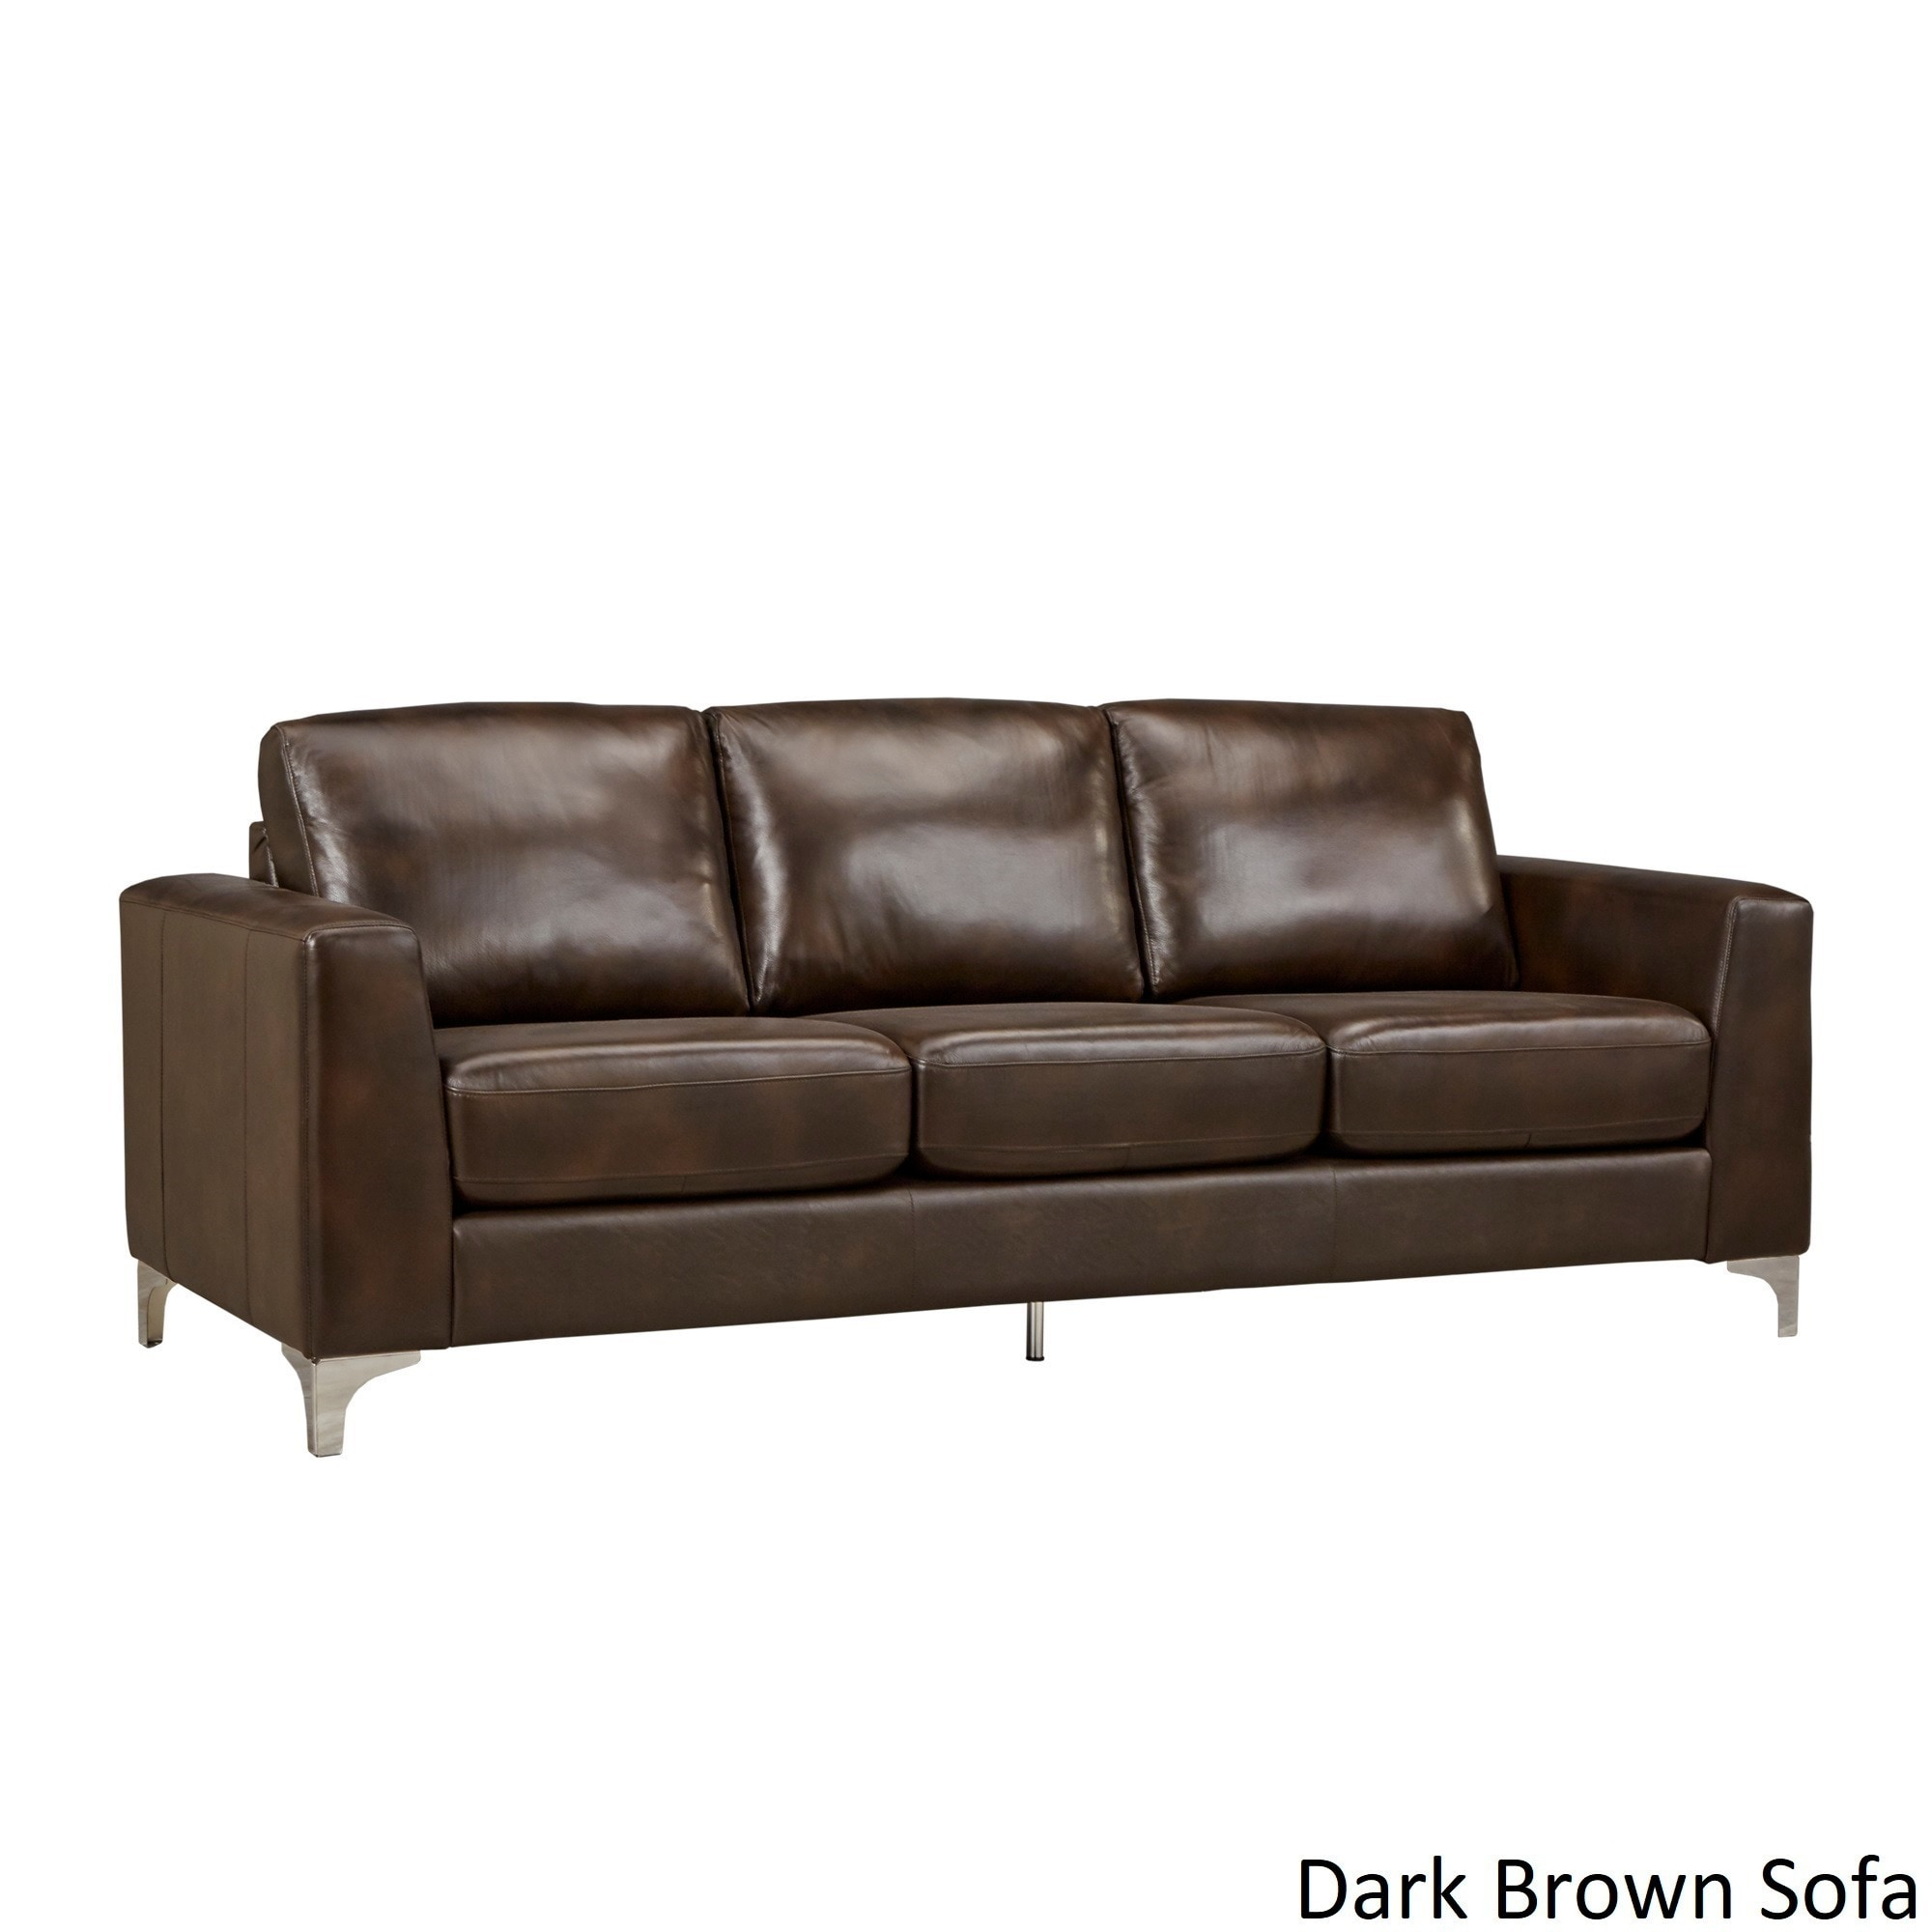 Shop Bastian Aniline Leather Sofa By INSPIRE Q Modern   On Sale   Free  Shipping Today   Overstock   14124766